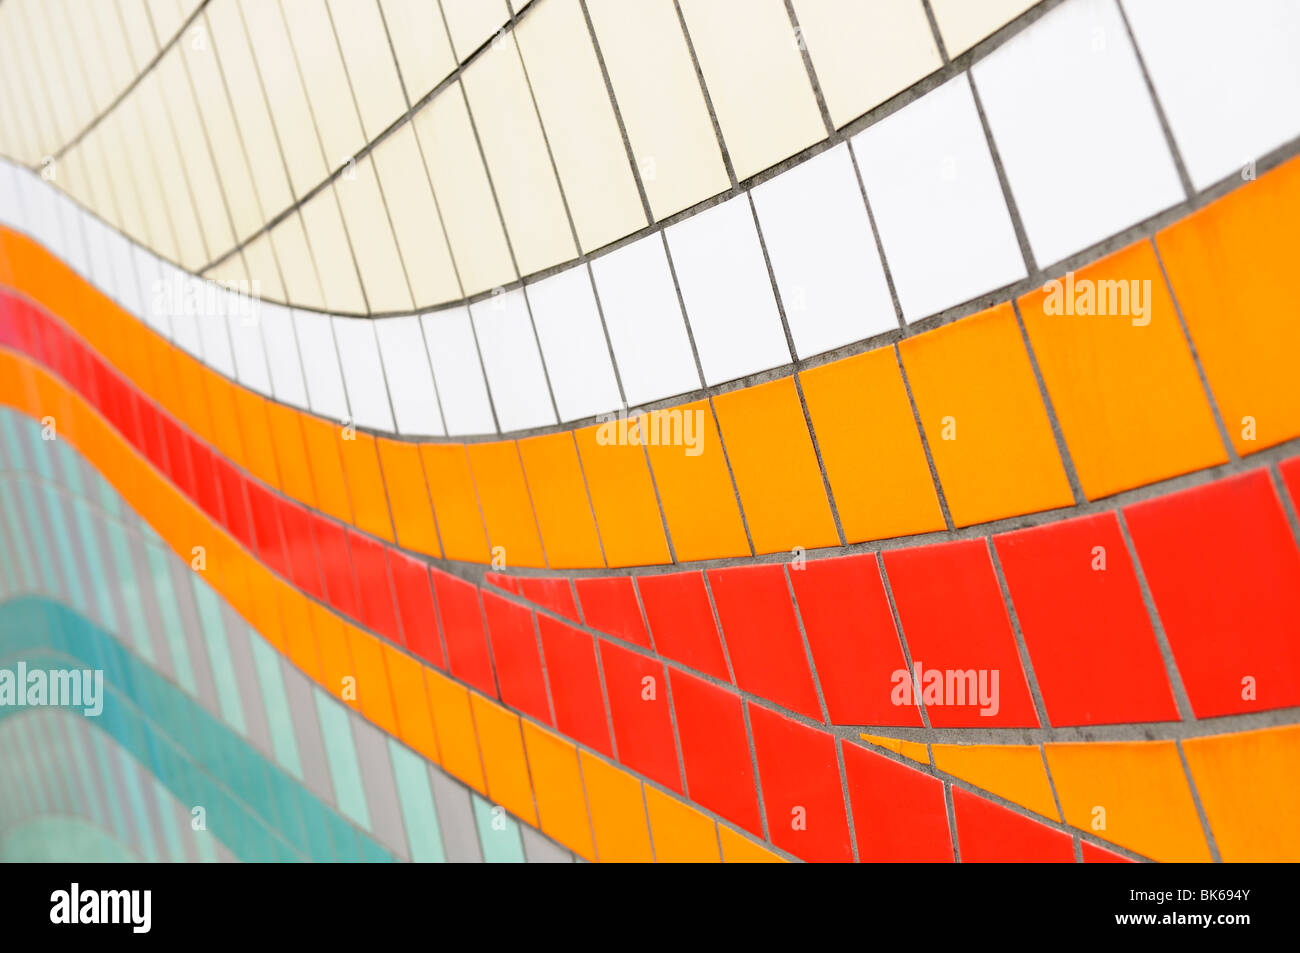 Stock photo of a geometric pattern of brightly coloured exterior wall tiles. - Stock Image